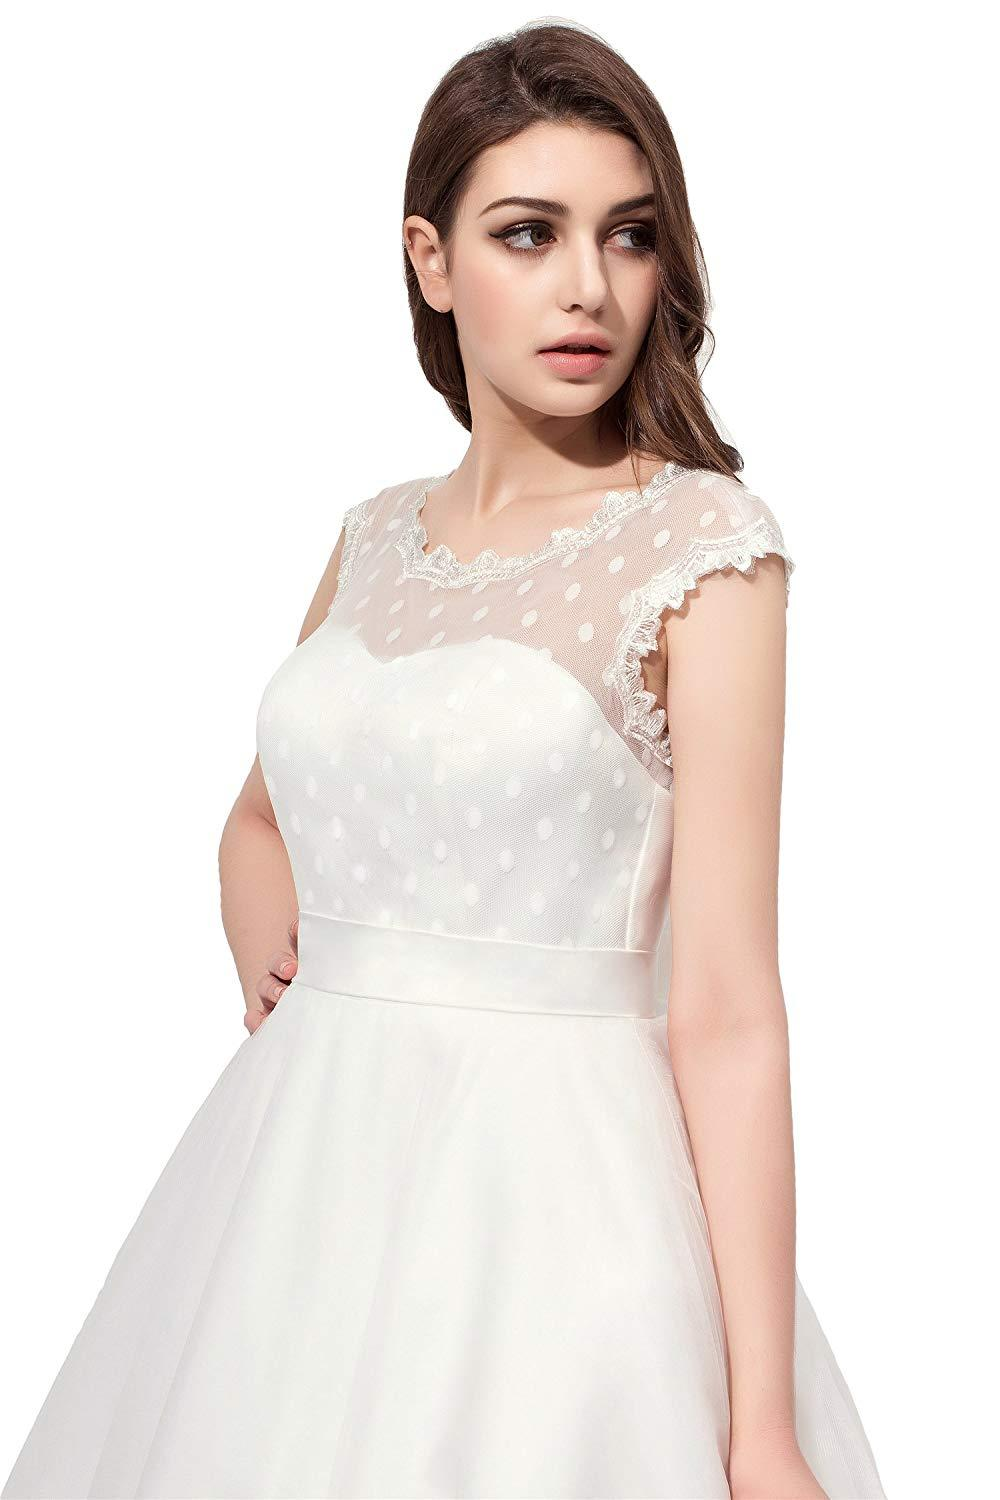 Vintage 1950s Style Polka Dotted Tea Length Little Wedding Dress Bride Gowns